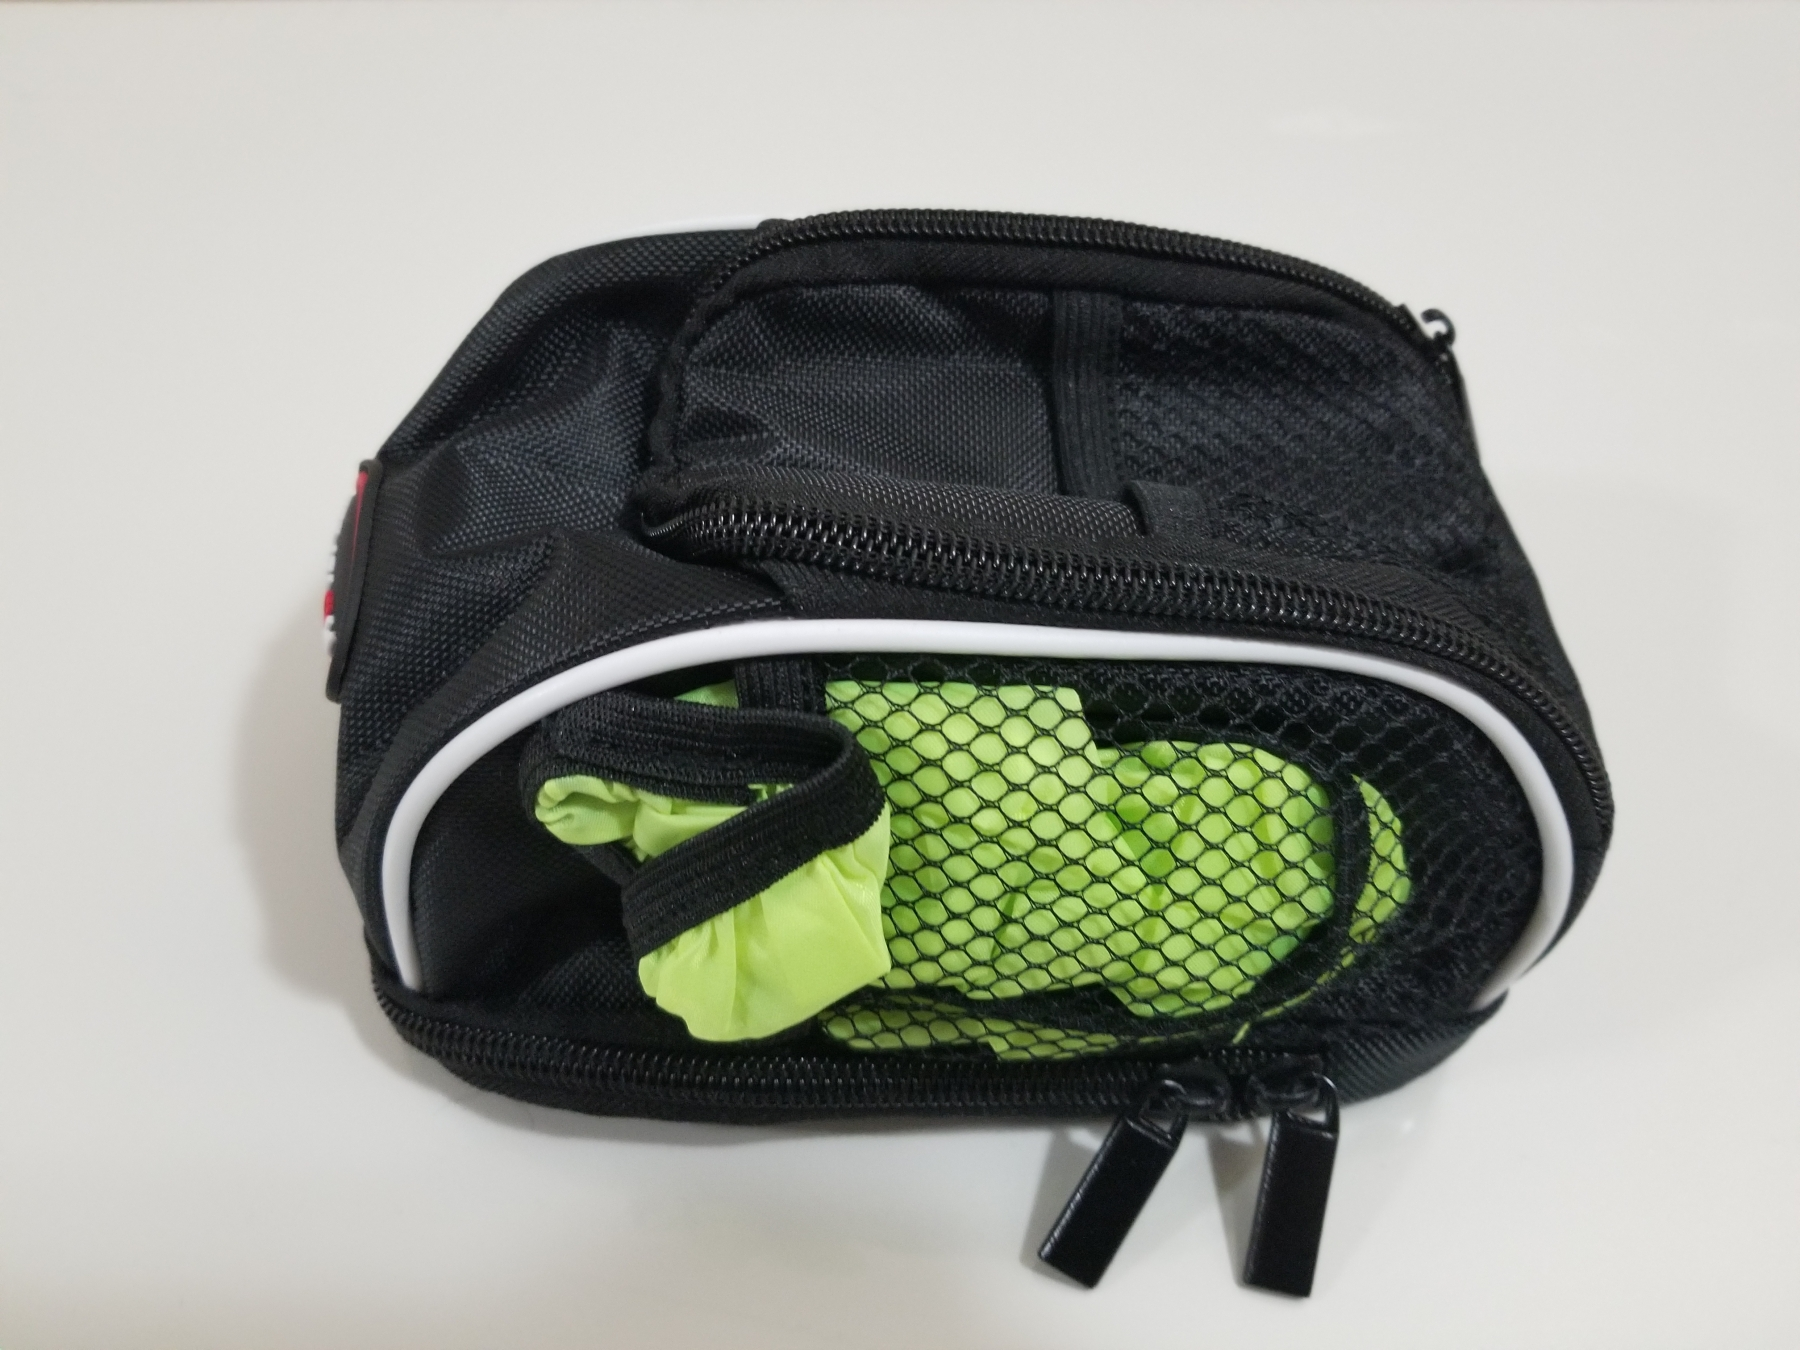 Great compact size bicycle handlebar bag